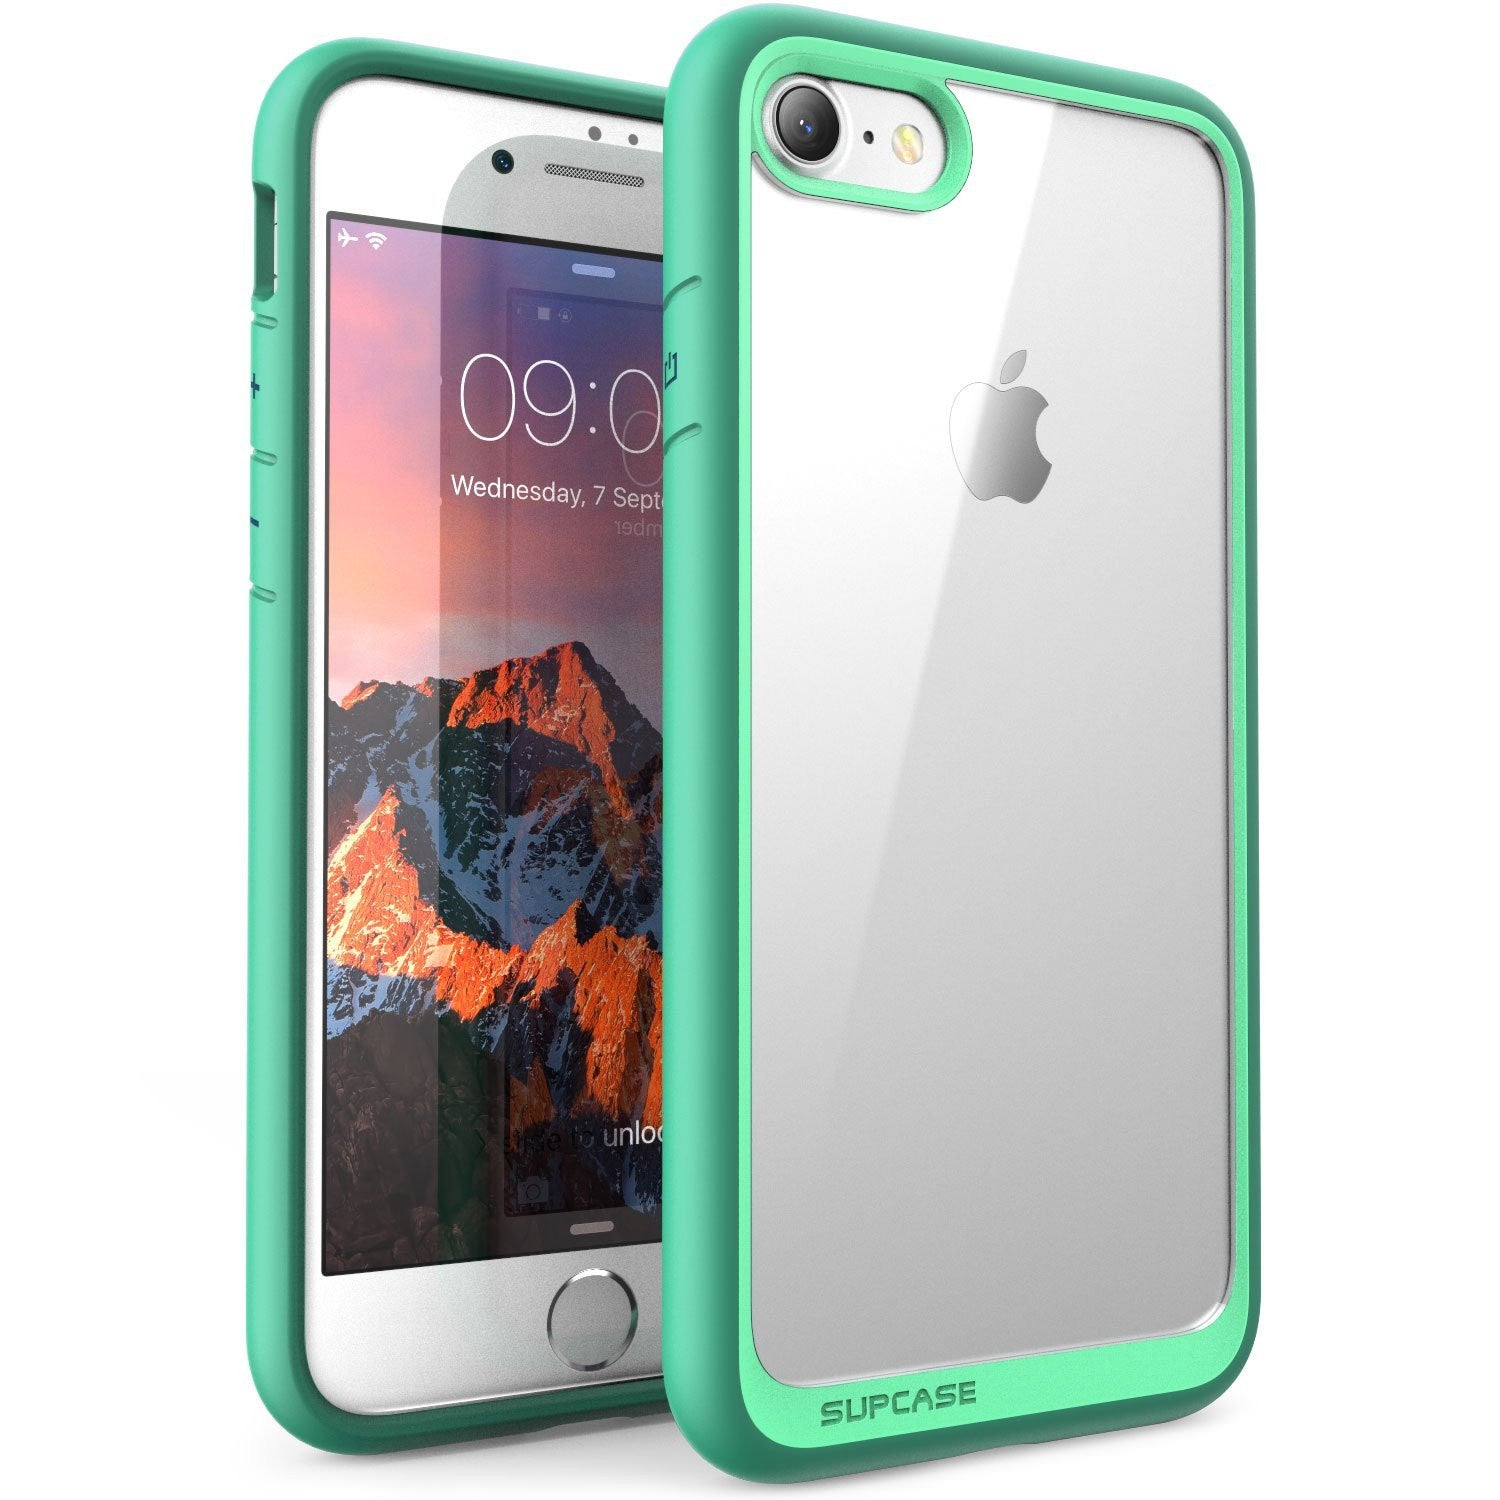 Genuine SUPCASE Ultra Style Premium Case iPhone 8/8 Plus - Green